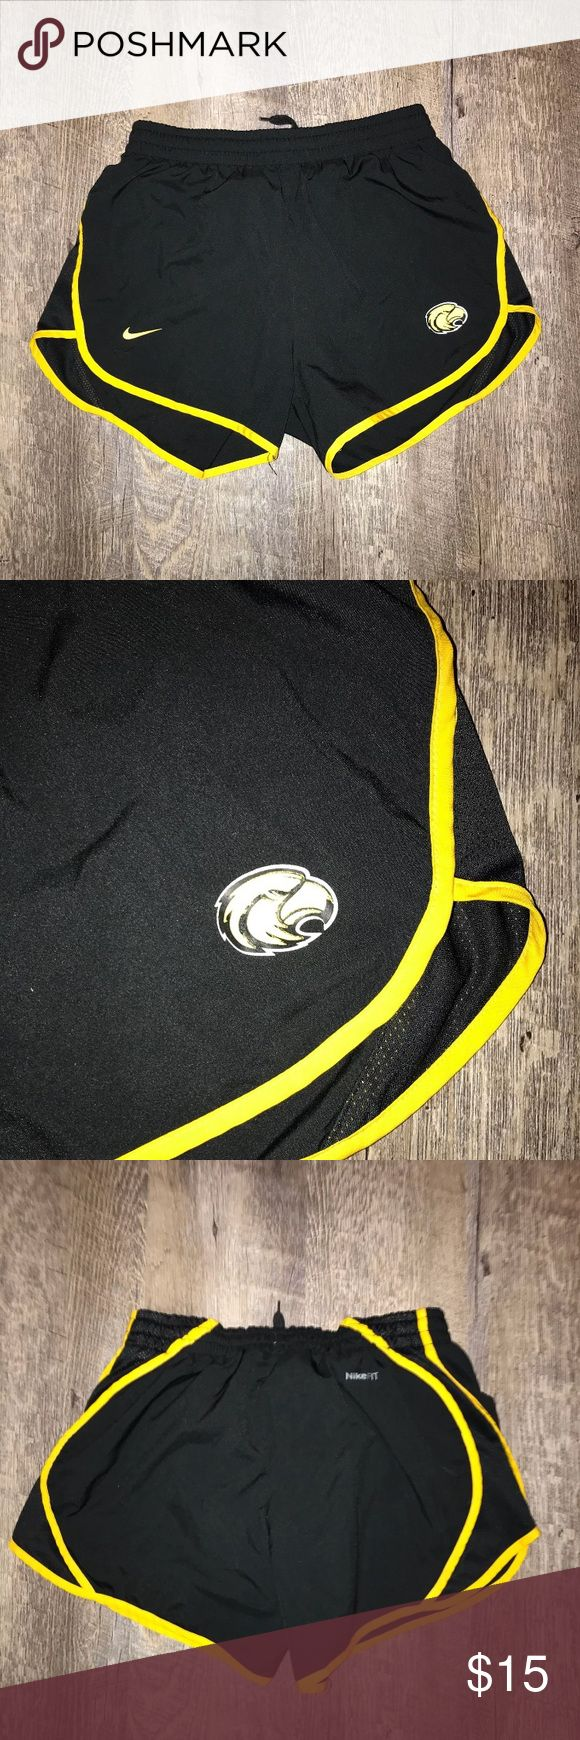 Nike Women Southern Miss Shorts Nike Women Southern Miss Shorts in excellent condition.  Size: XS Color: Black and Gold Nike Shorts